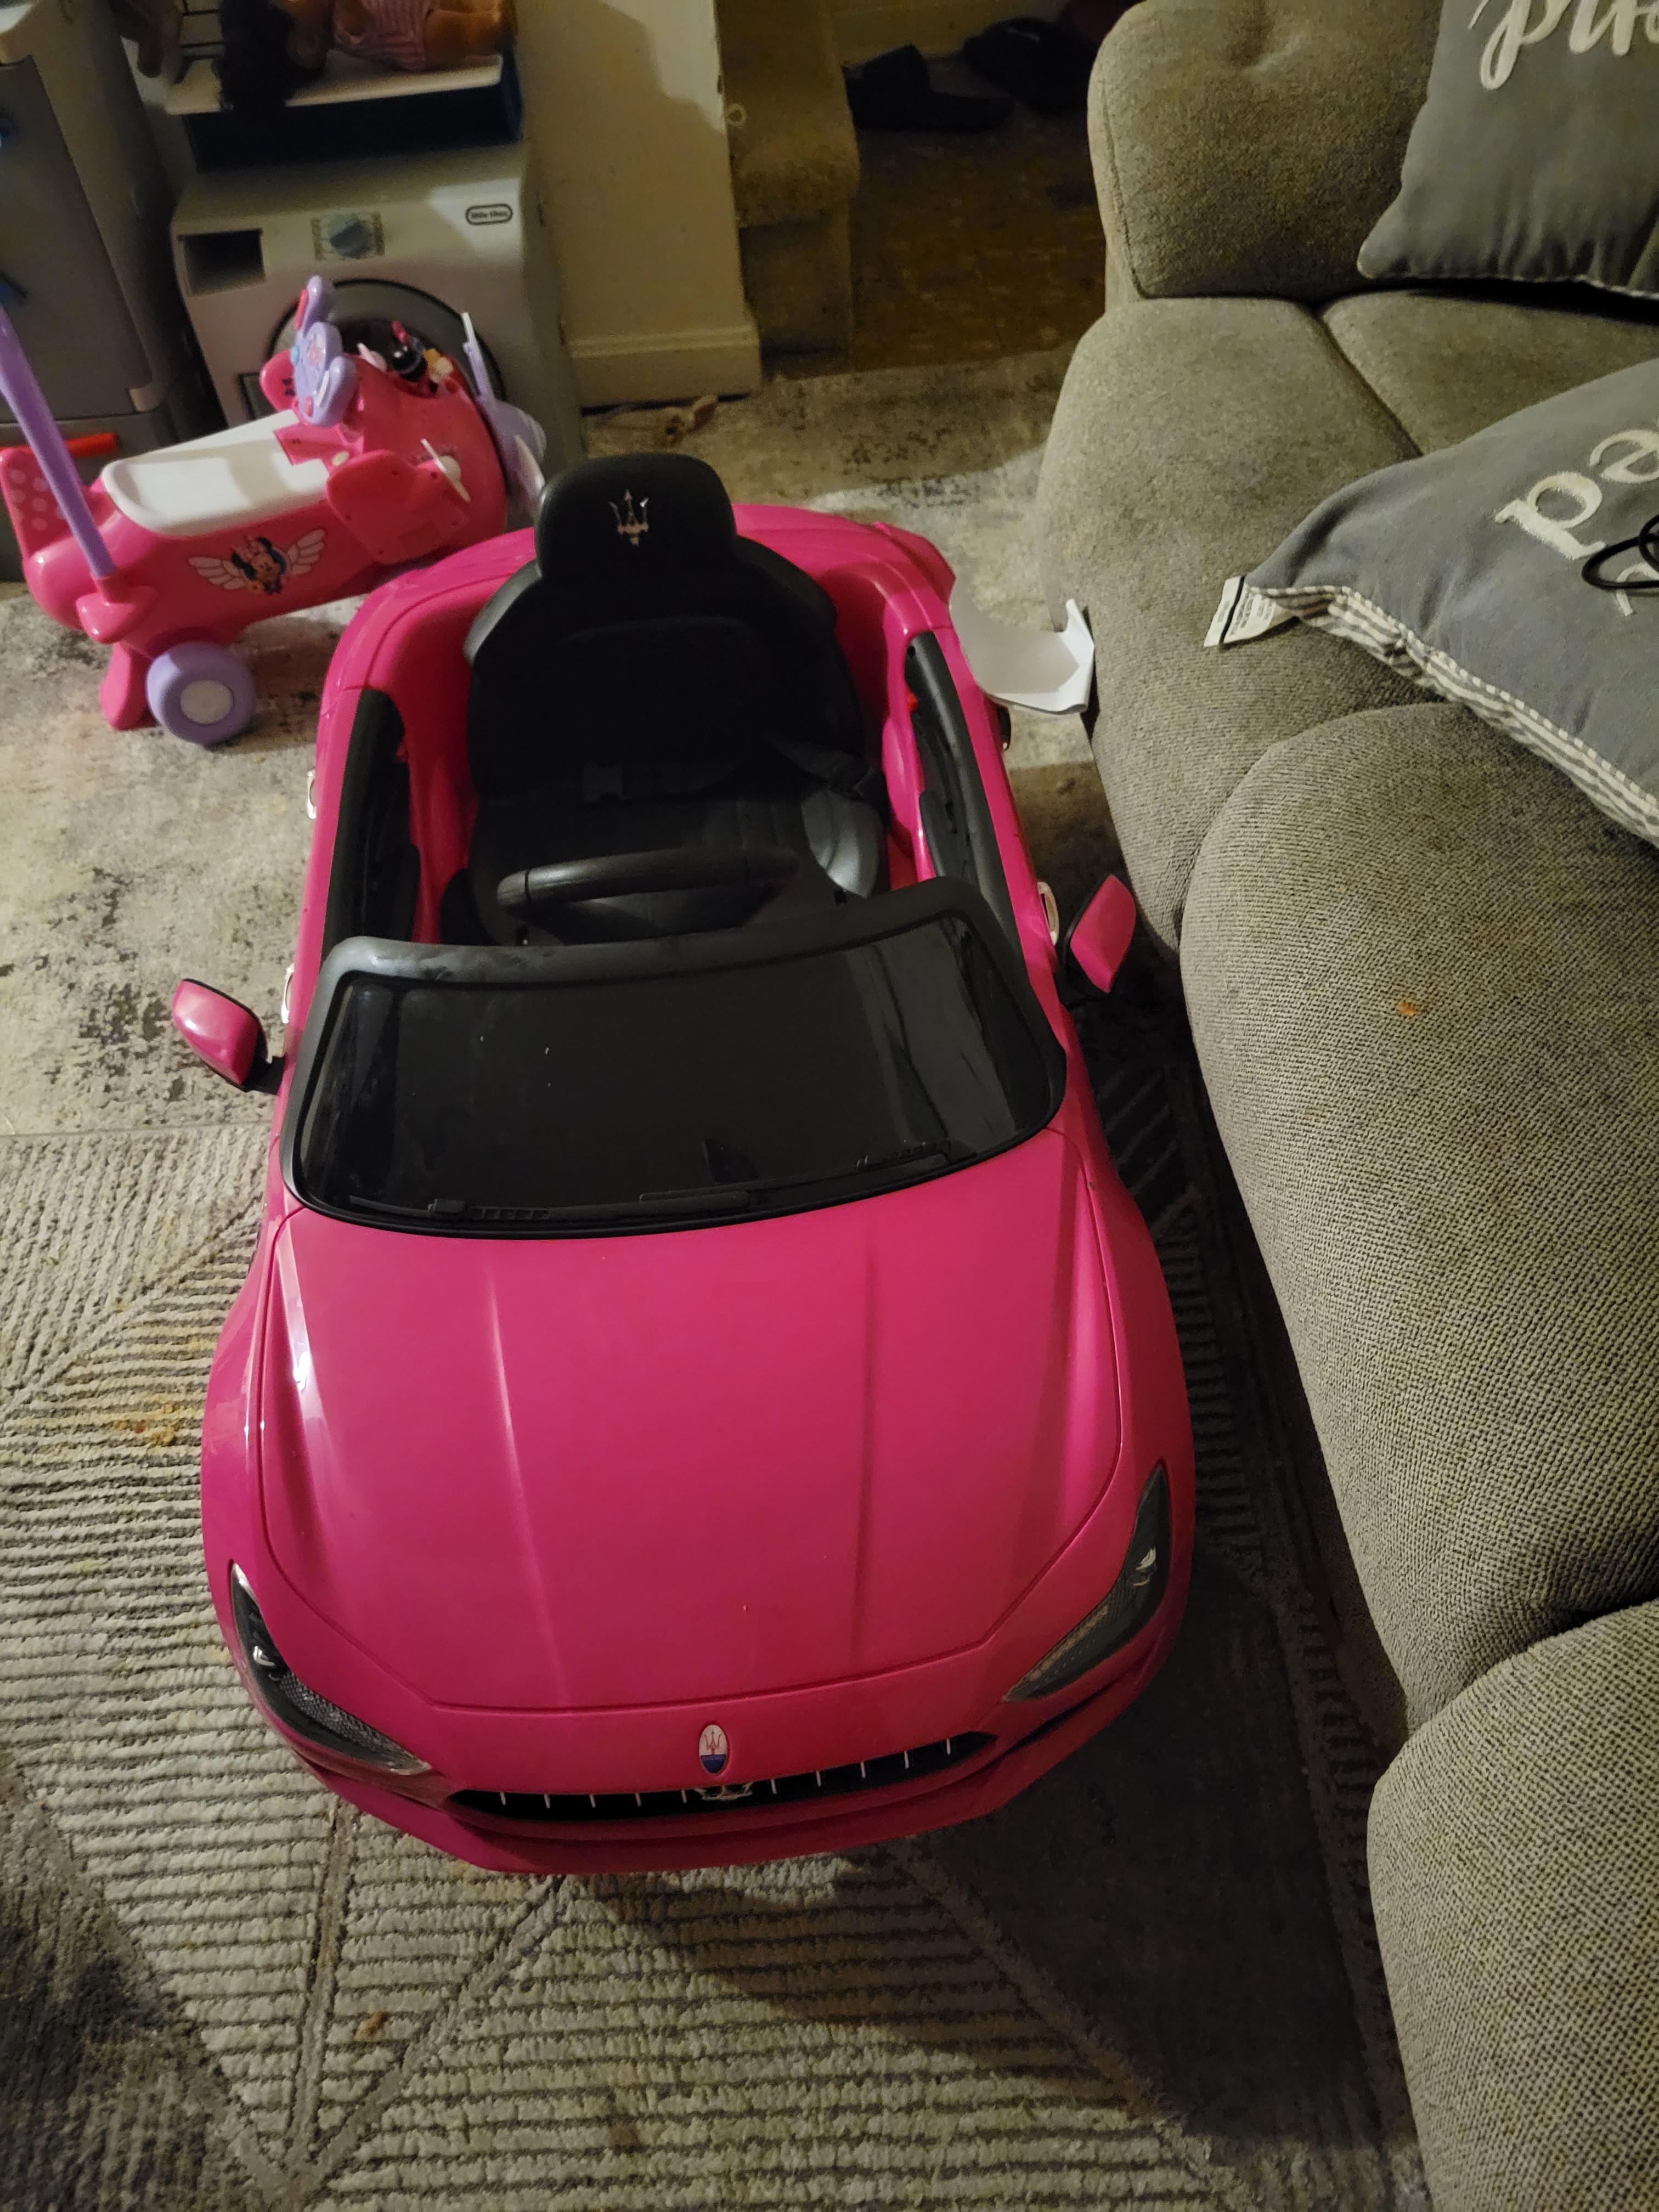 12V Maserati Licensed Kids Ride On Car with Remote Control, Pink photo review